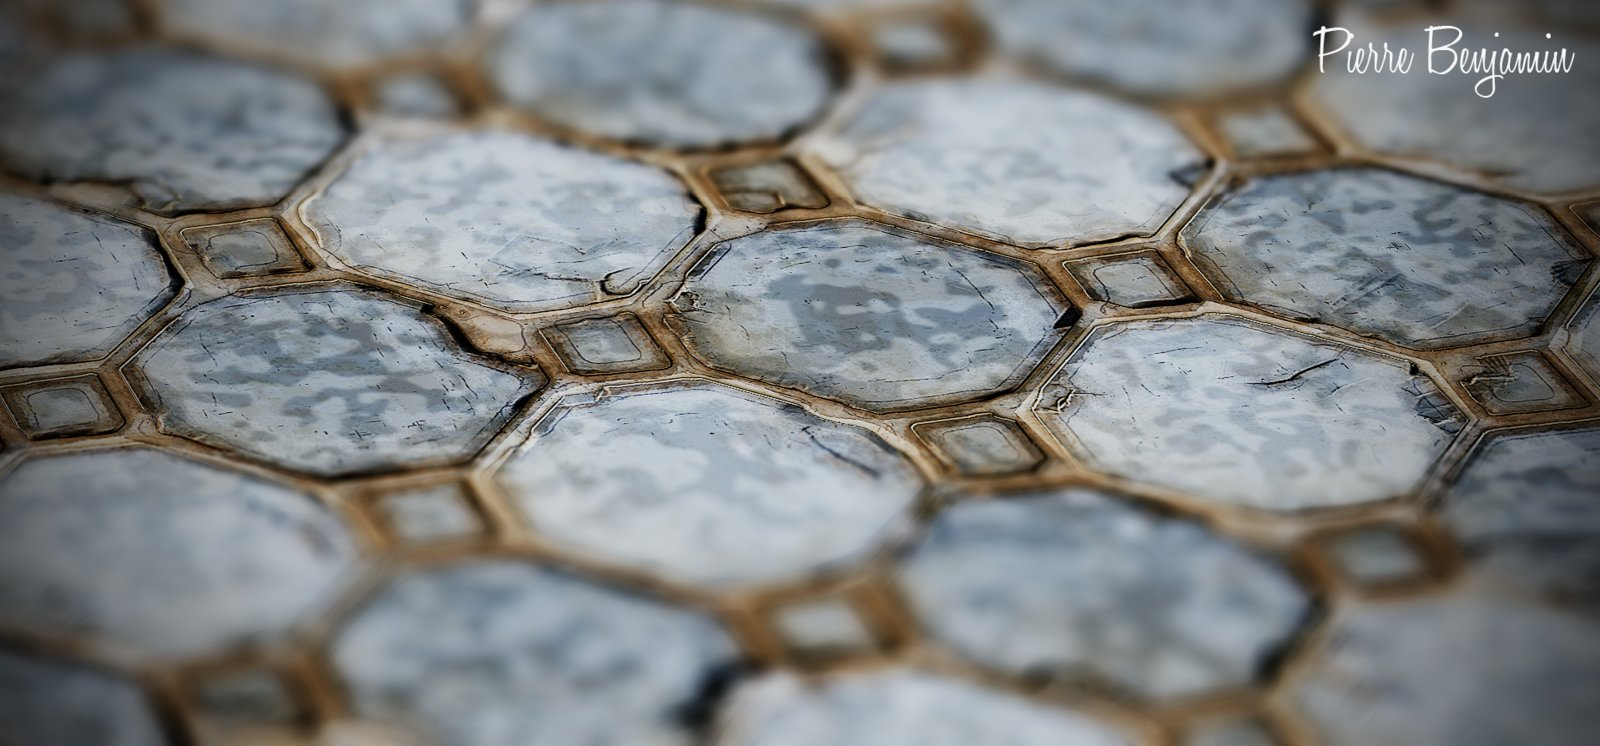 Zbrush - tileable textures for games – floor tiles